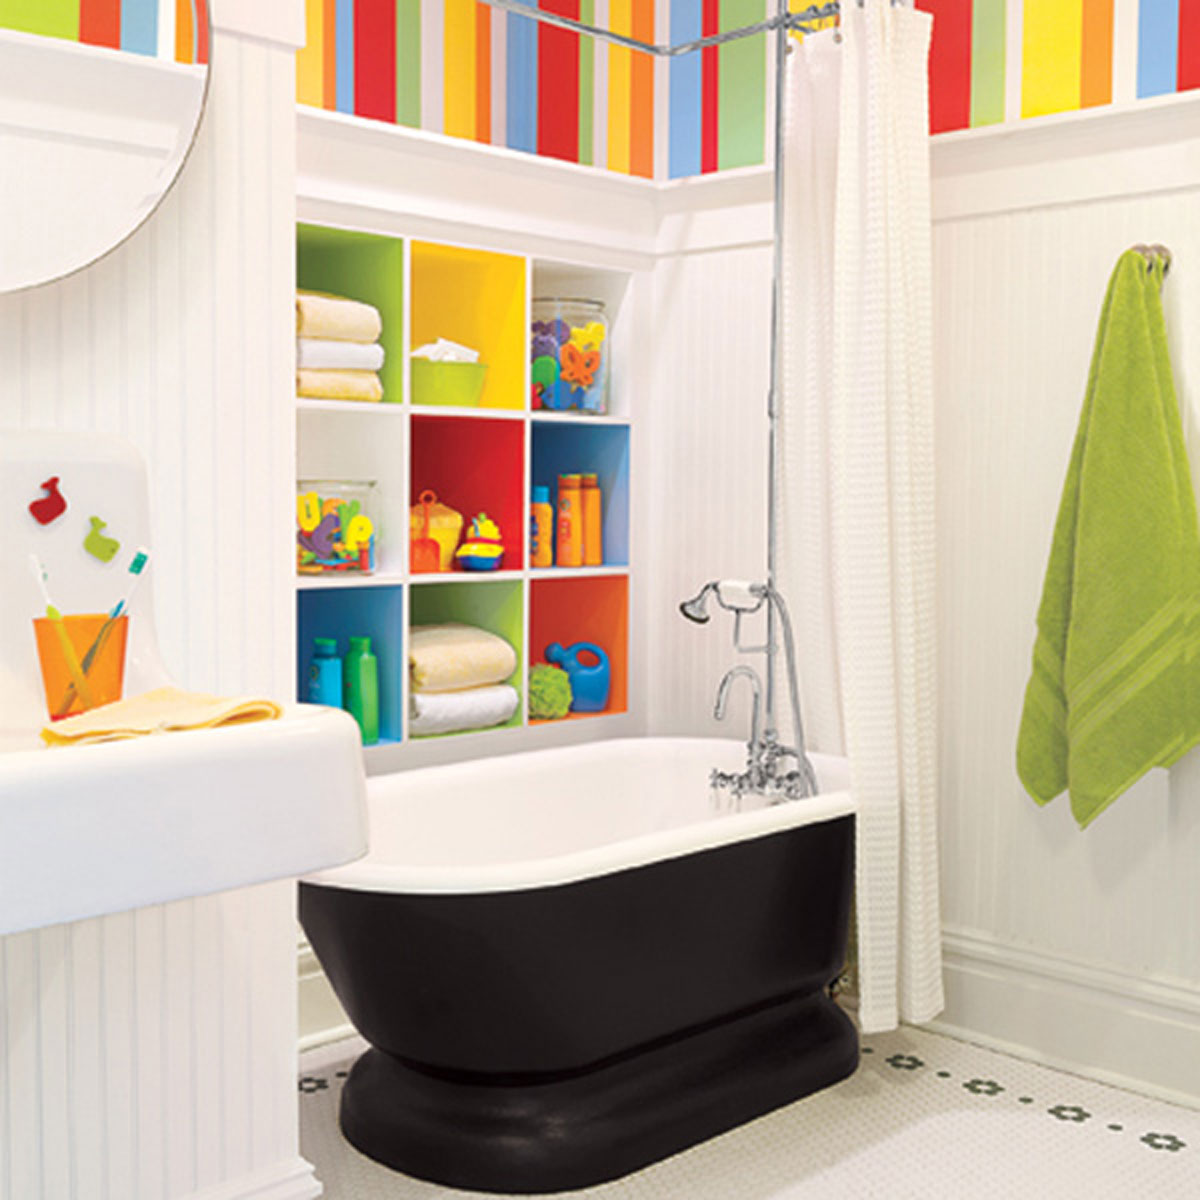 Modern kids bathroom furniture 6162 for Cool bathroom themes